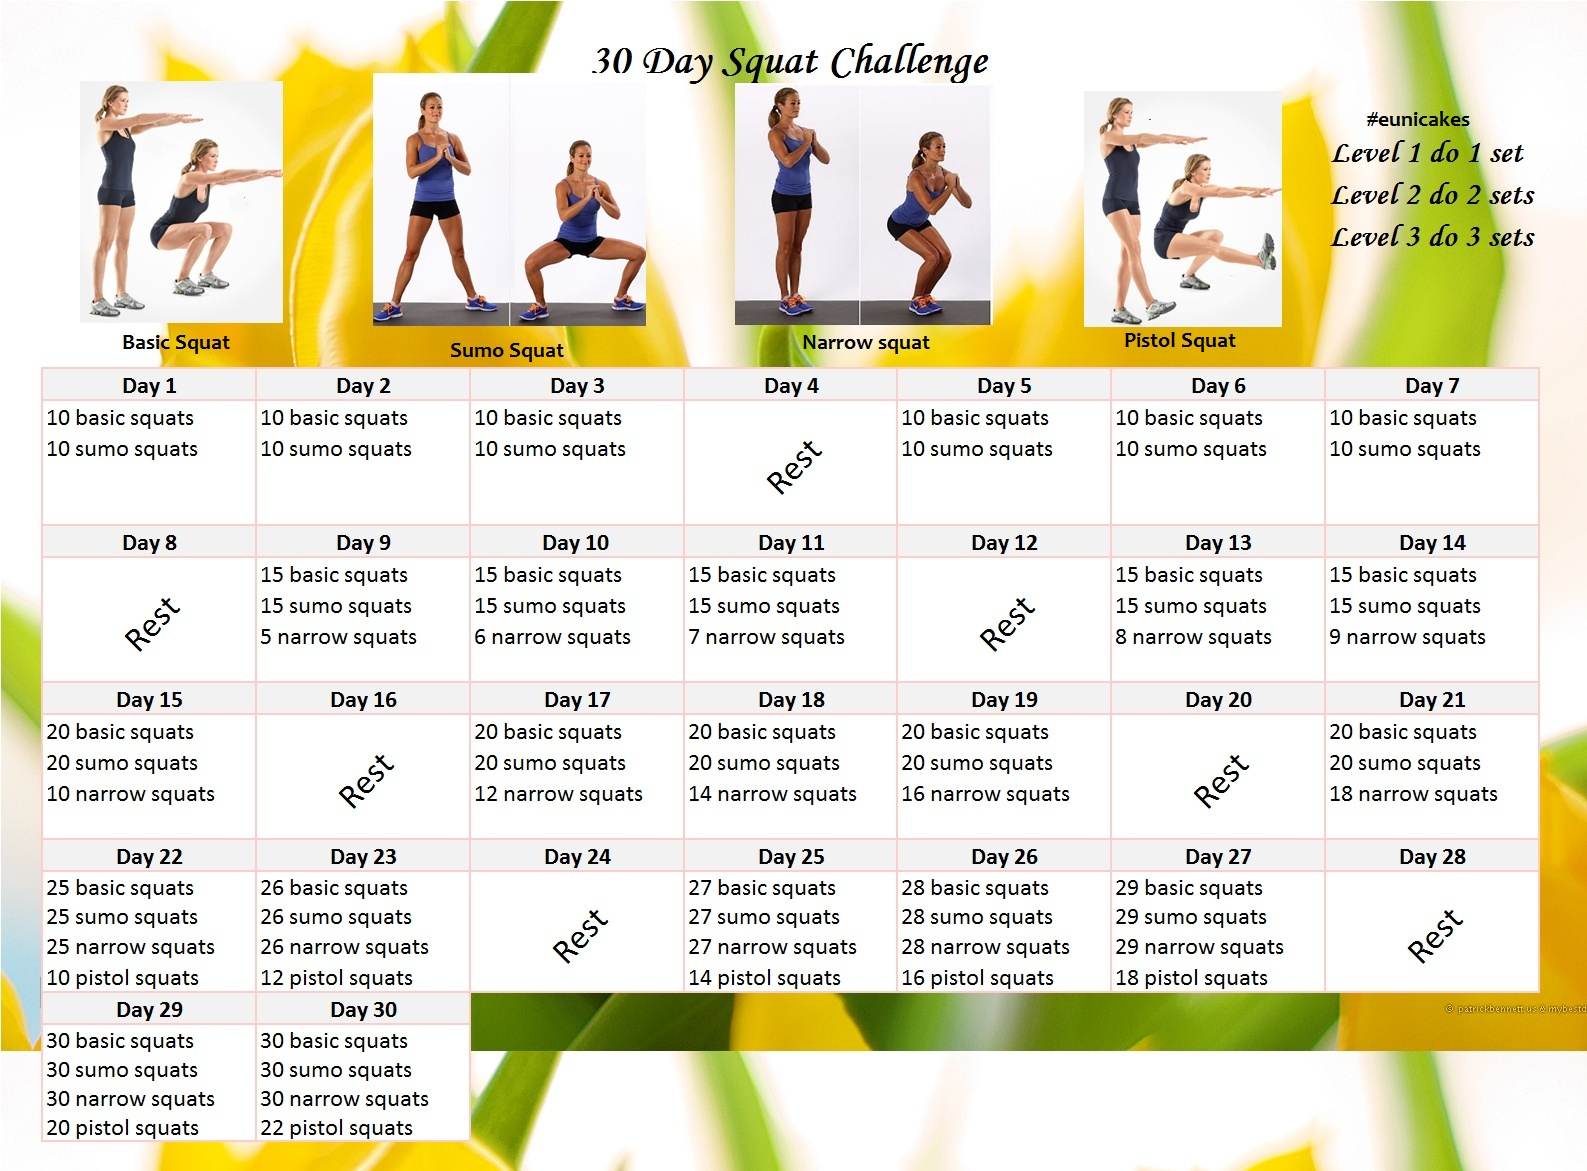 Fitness Challenge: 30 Day Squat Calendar Challenge   Eunicakes With Regard To 30 Day Squat Challenge Calendar